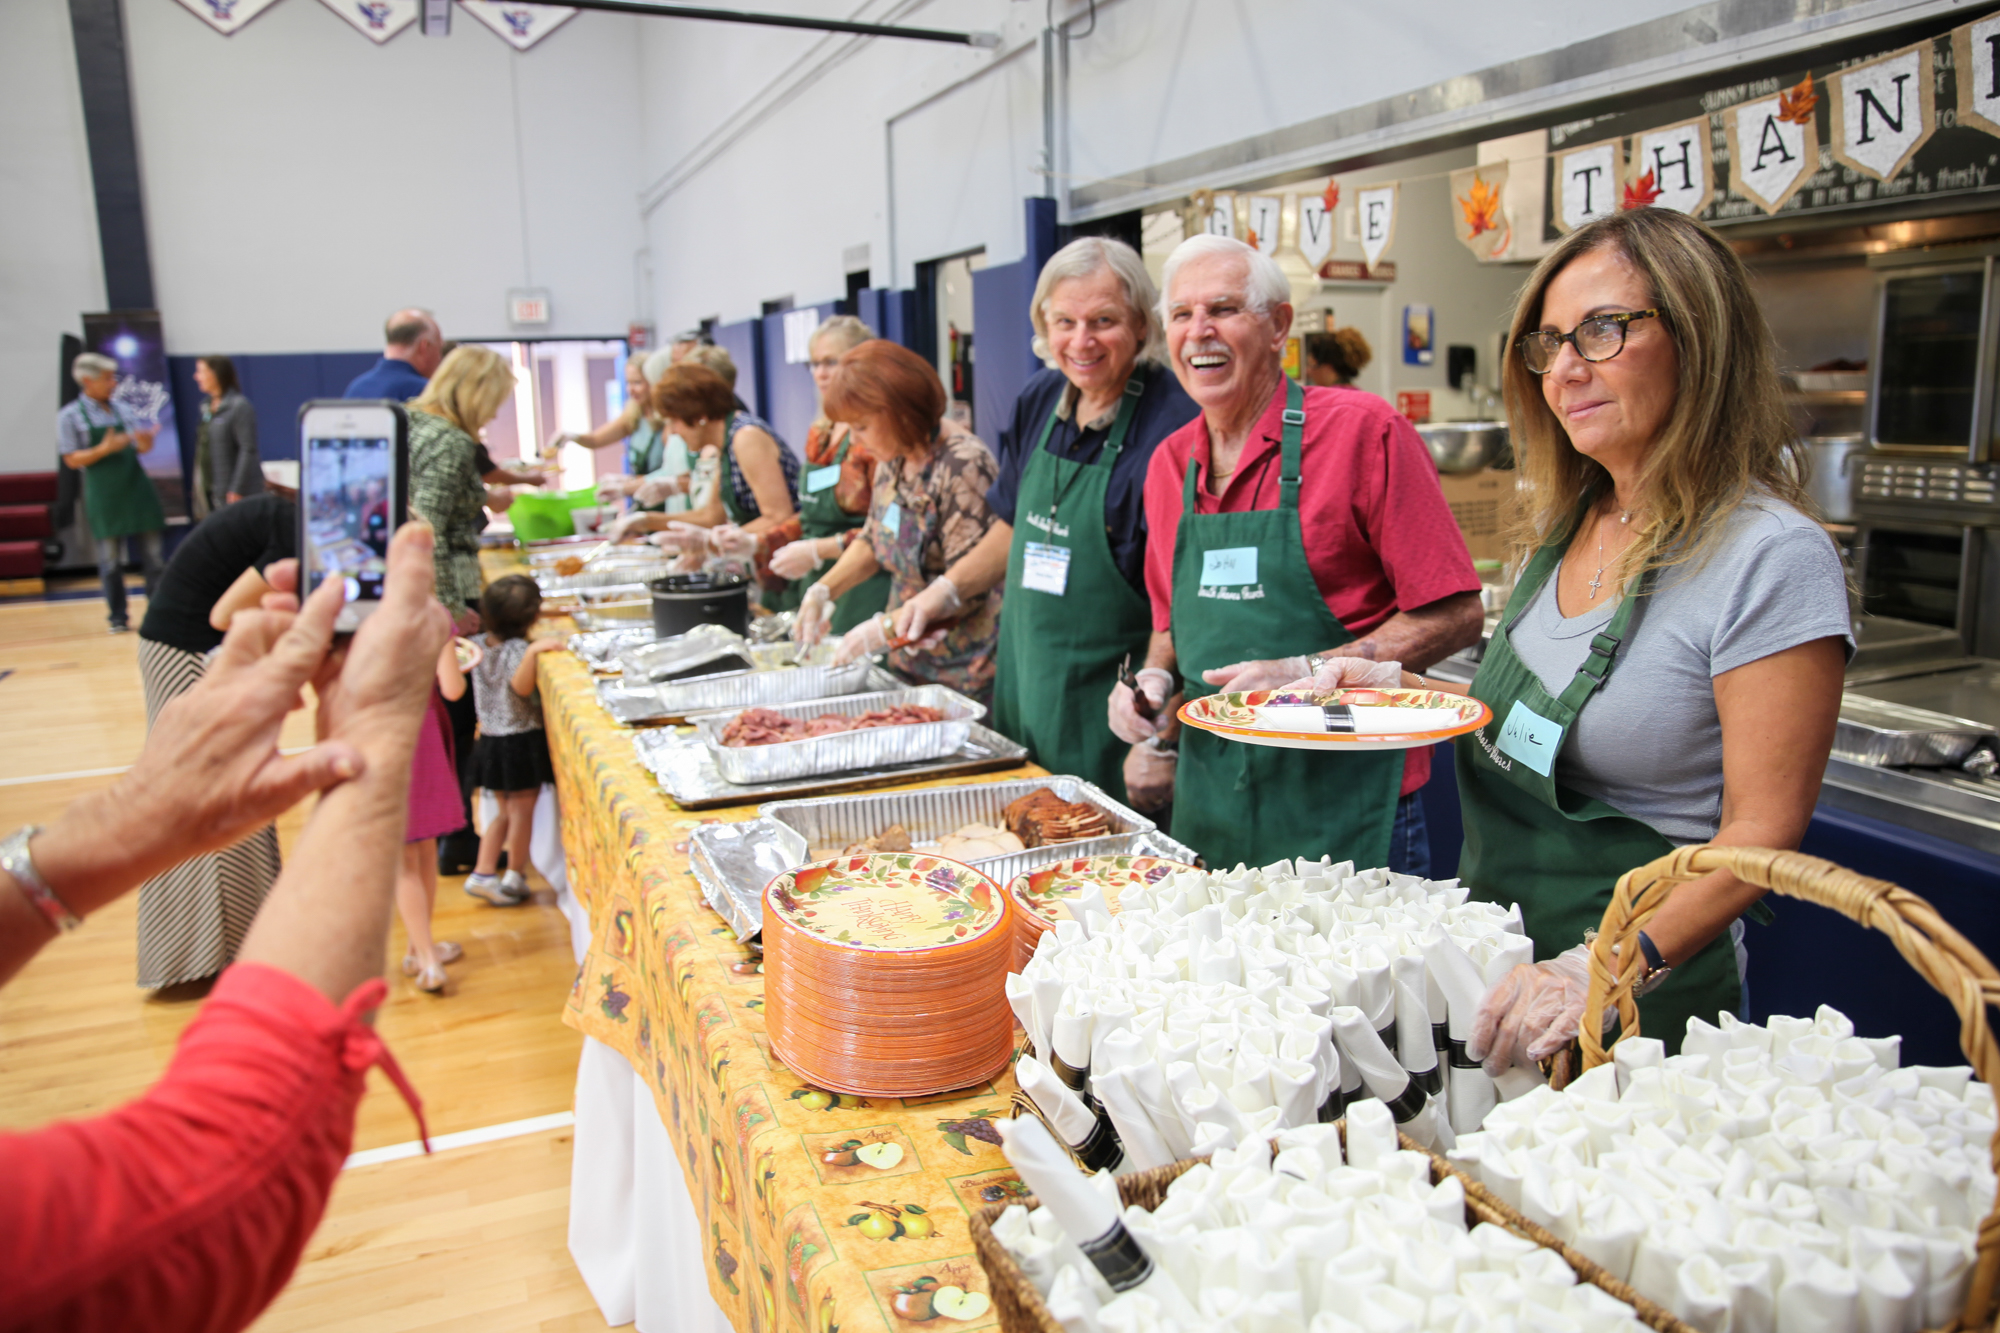 Volunteers get their photo taken during a break in the action at the Love Thy Neighbor Thanksgiving dinner at South Shores Church on Nov. 19. Photo: Allison Jarrell